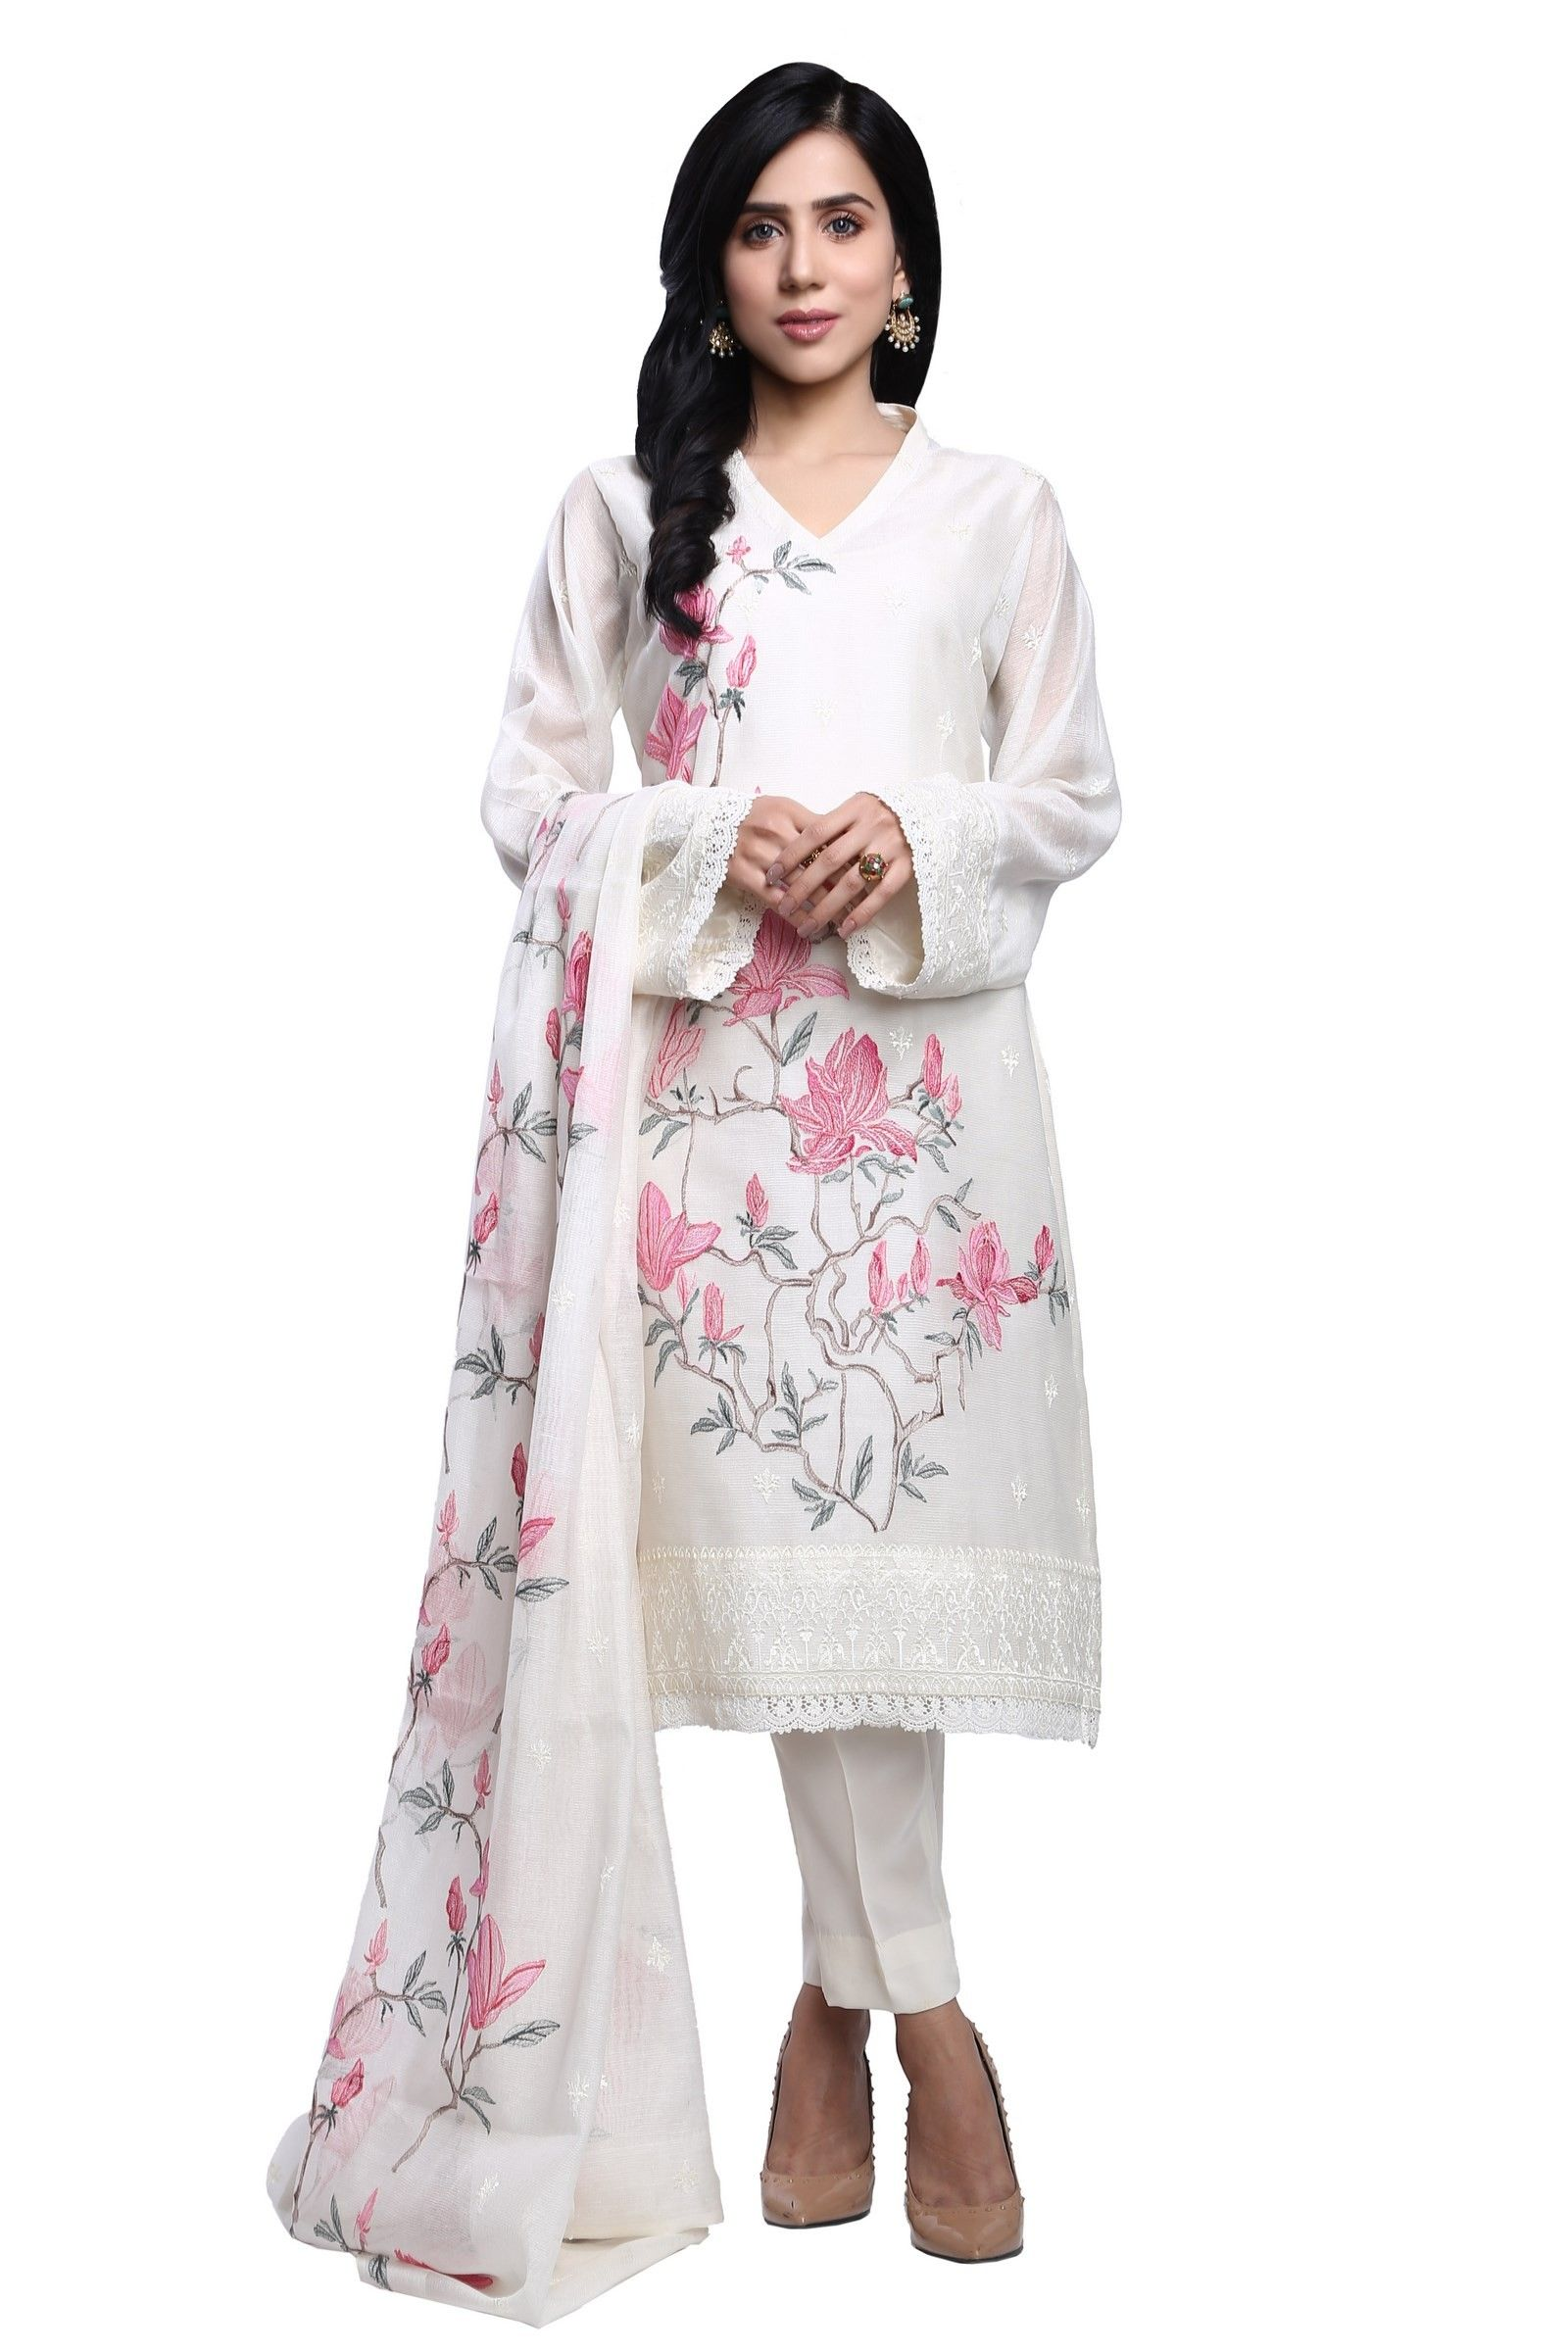 50117e73b9 Floral white stitched suit by Bareeze formal collection  2019.#springcollection #spring #readytowear #pretwear #unstitched #online  #linen #lawncollection ...